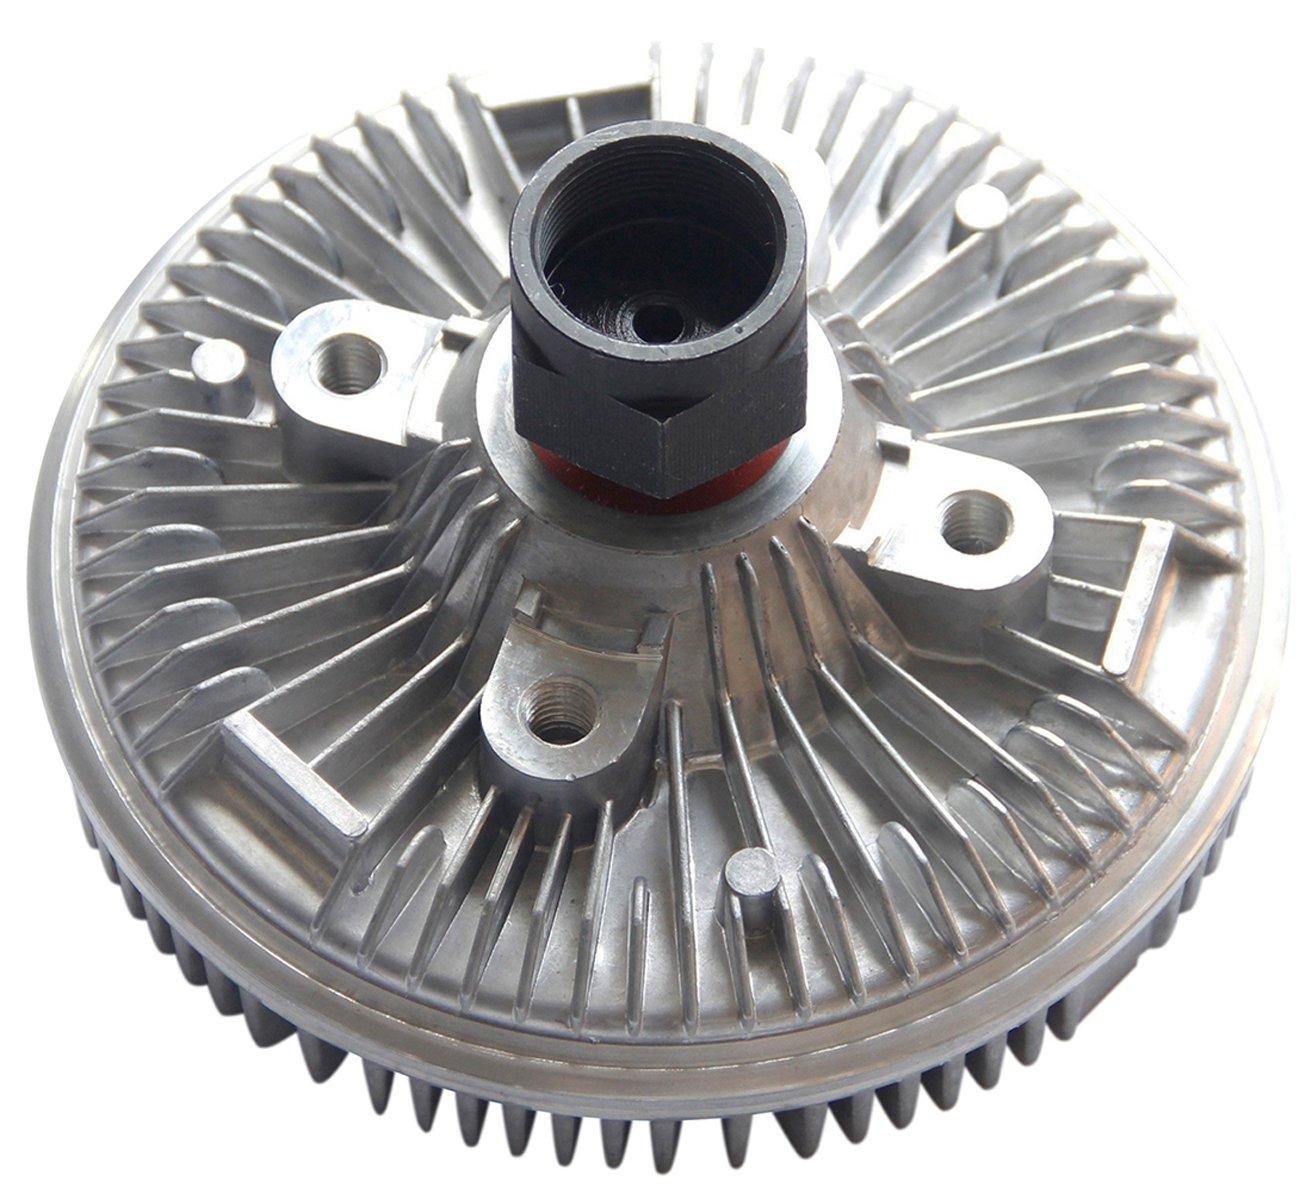 TOPAZ 2786 Engine Cooling Fan Clutch for 96-11 Cadillac Chevrolet GMC Oldsmobile 4.3 4.8L 5.3L 5.7L 6.0L